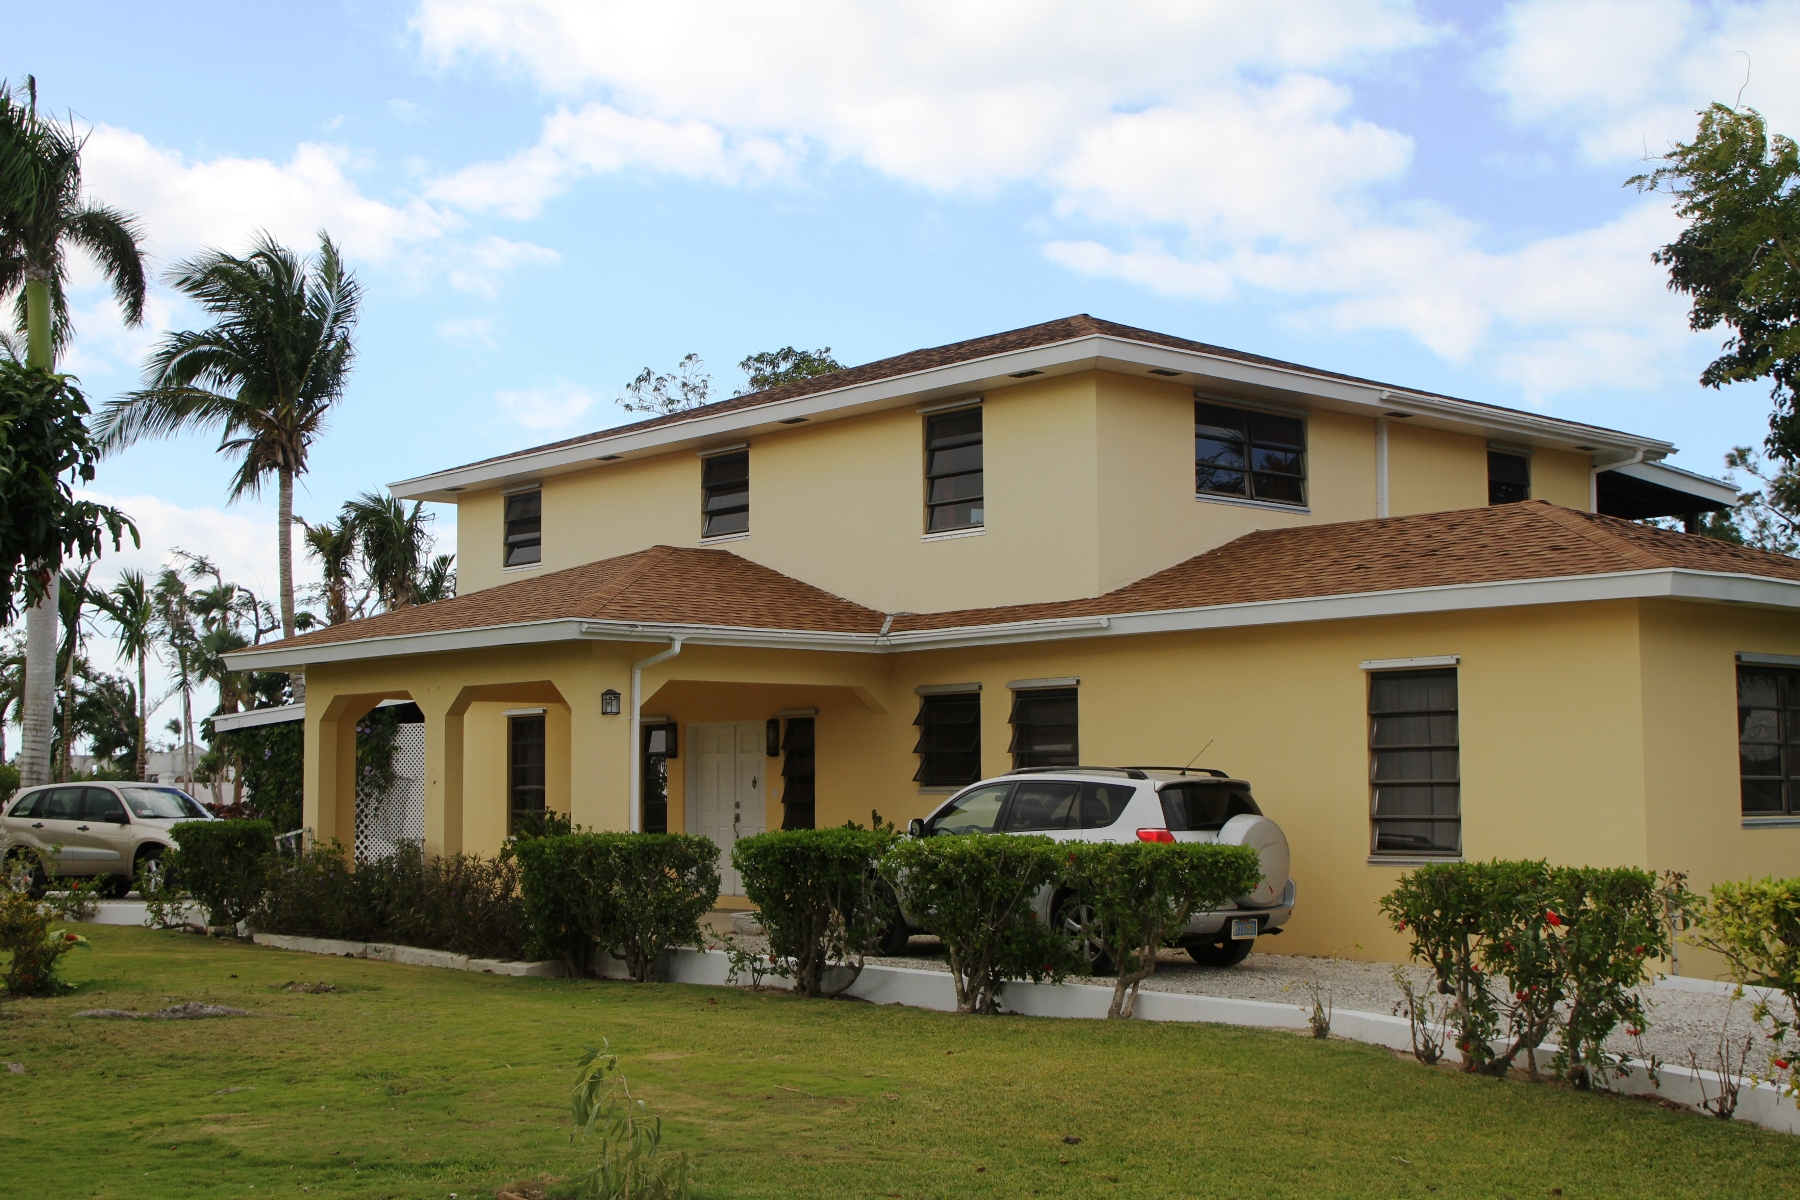 Single Family Home for Rent at Great, Family Friendly Lyford Cay Rental - MLS 32670 Lyford Cay, Nassau And Paradise Island, Bahamas